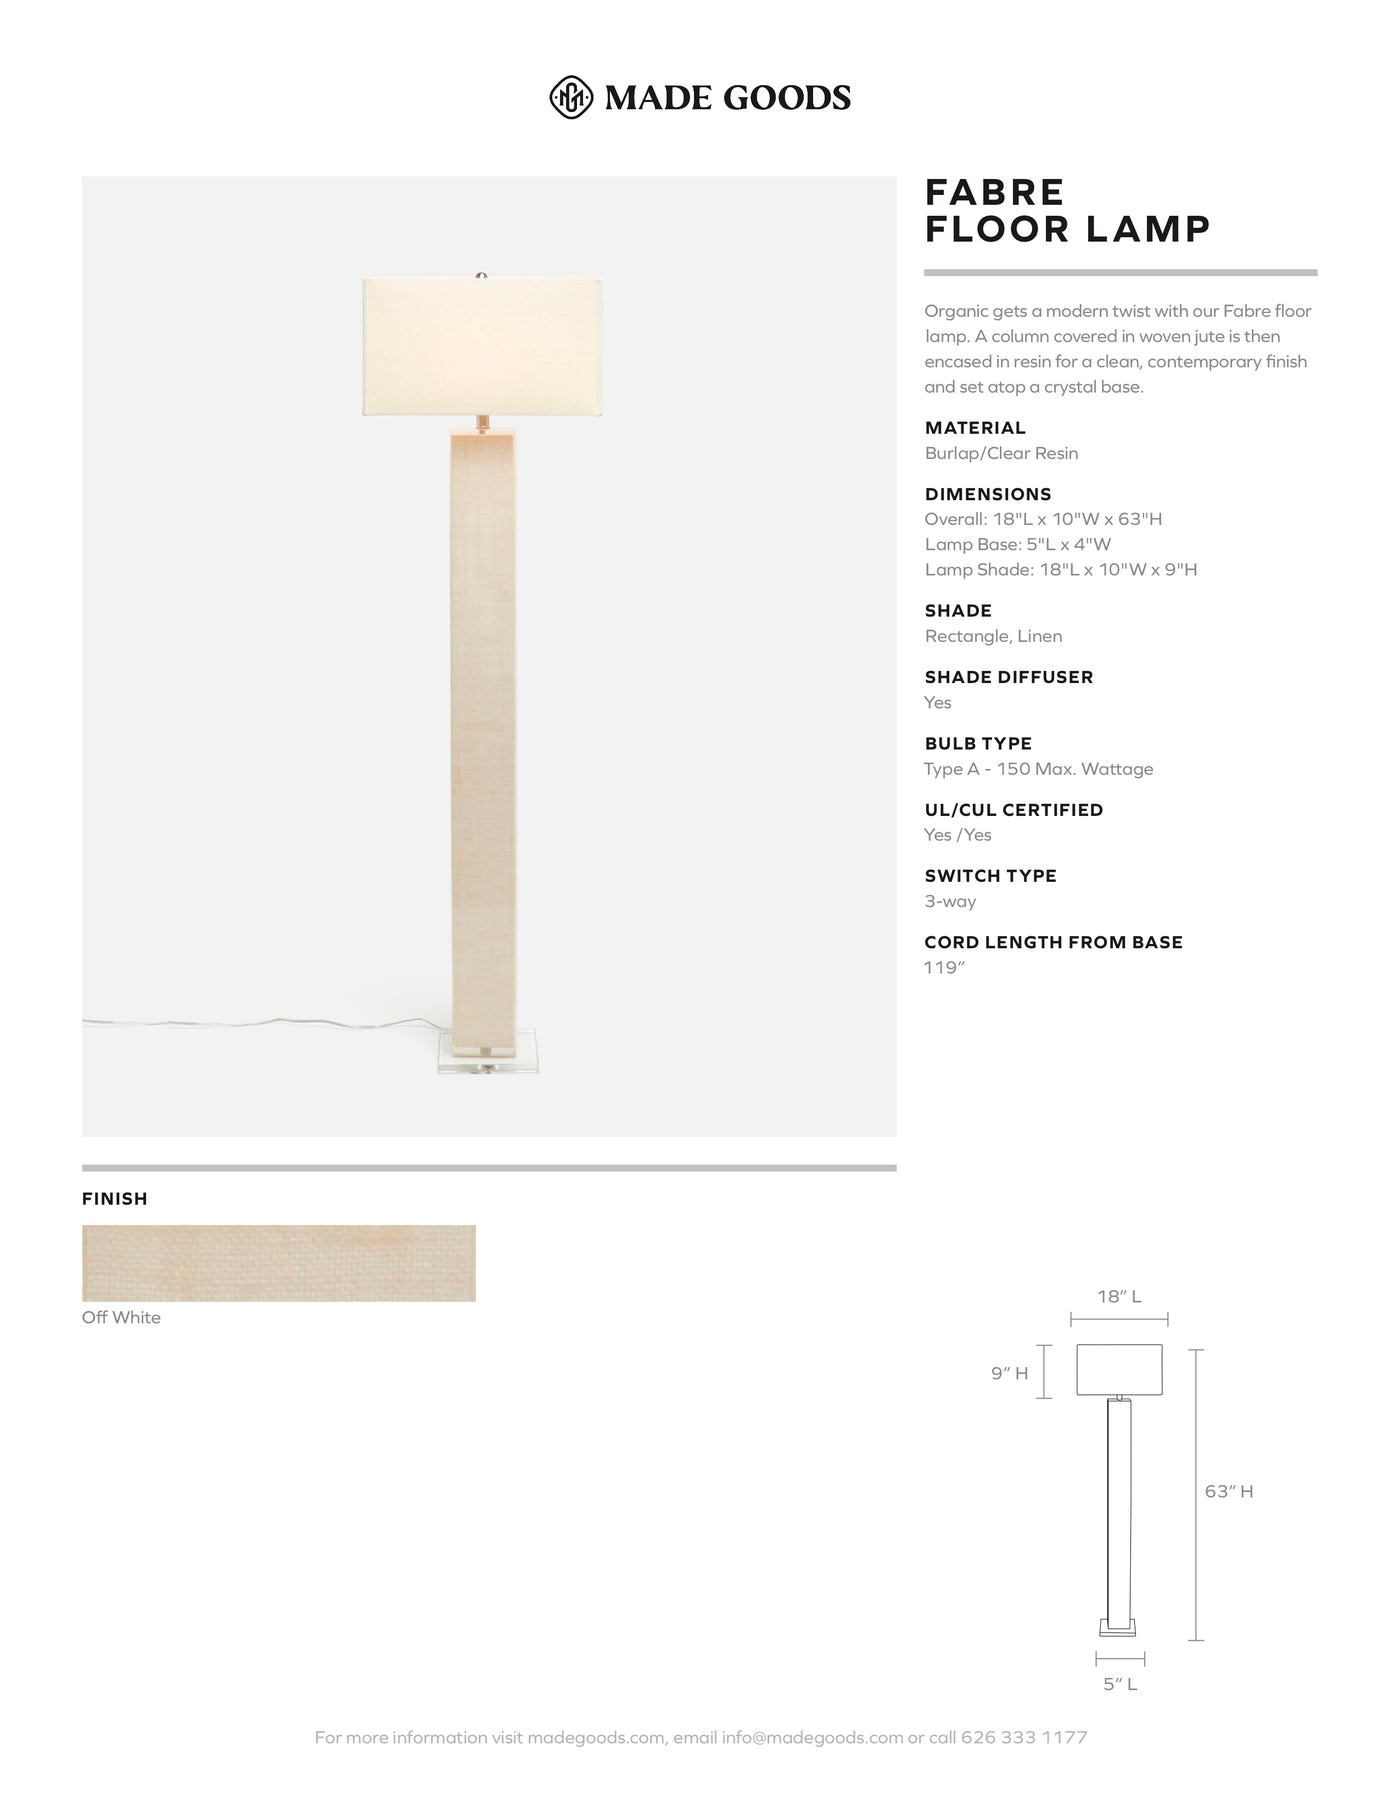 made goods fabre floor lamp off white burlap tear sheet